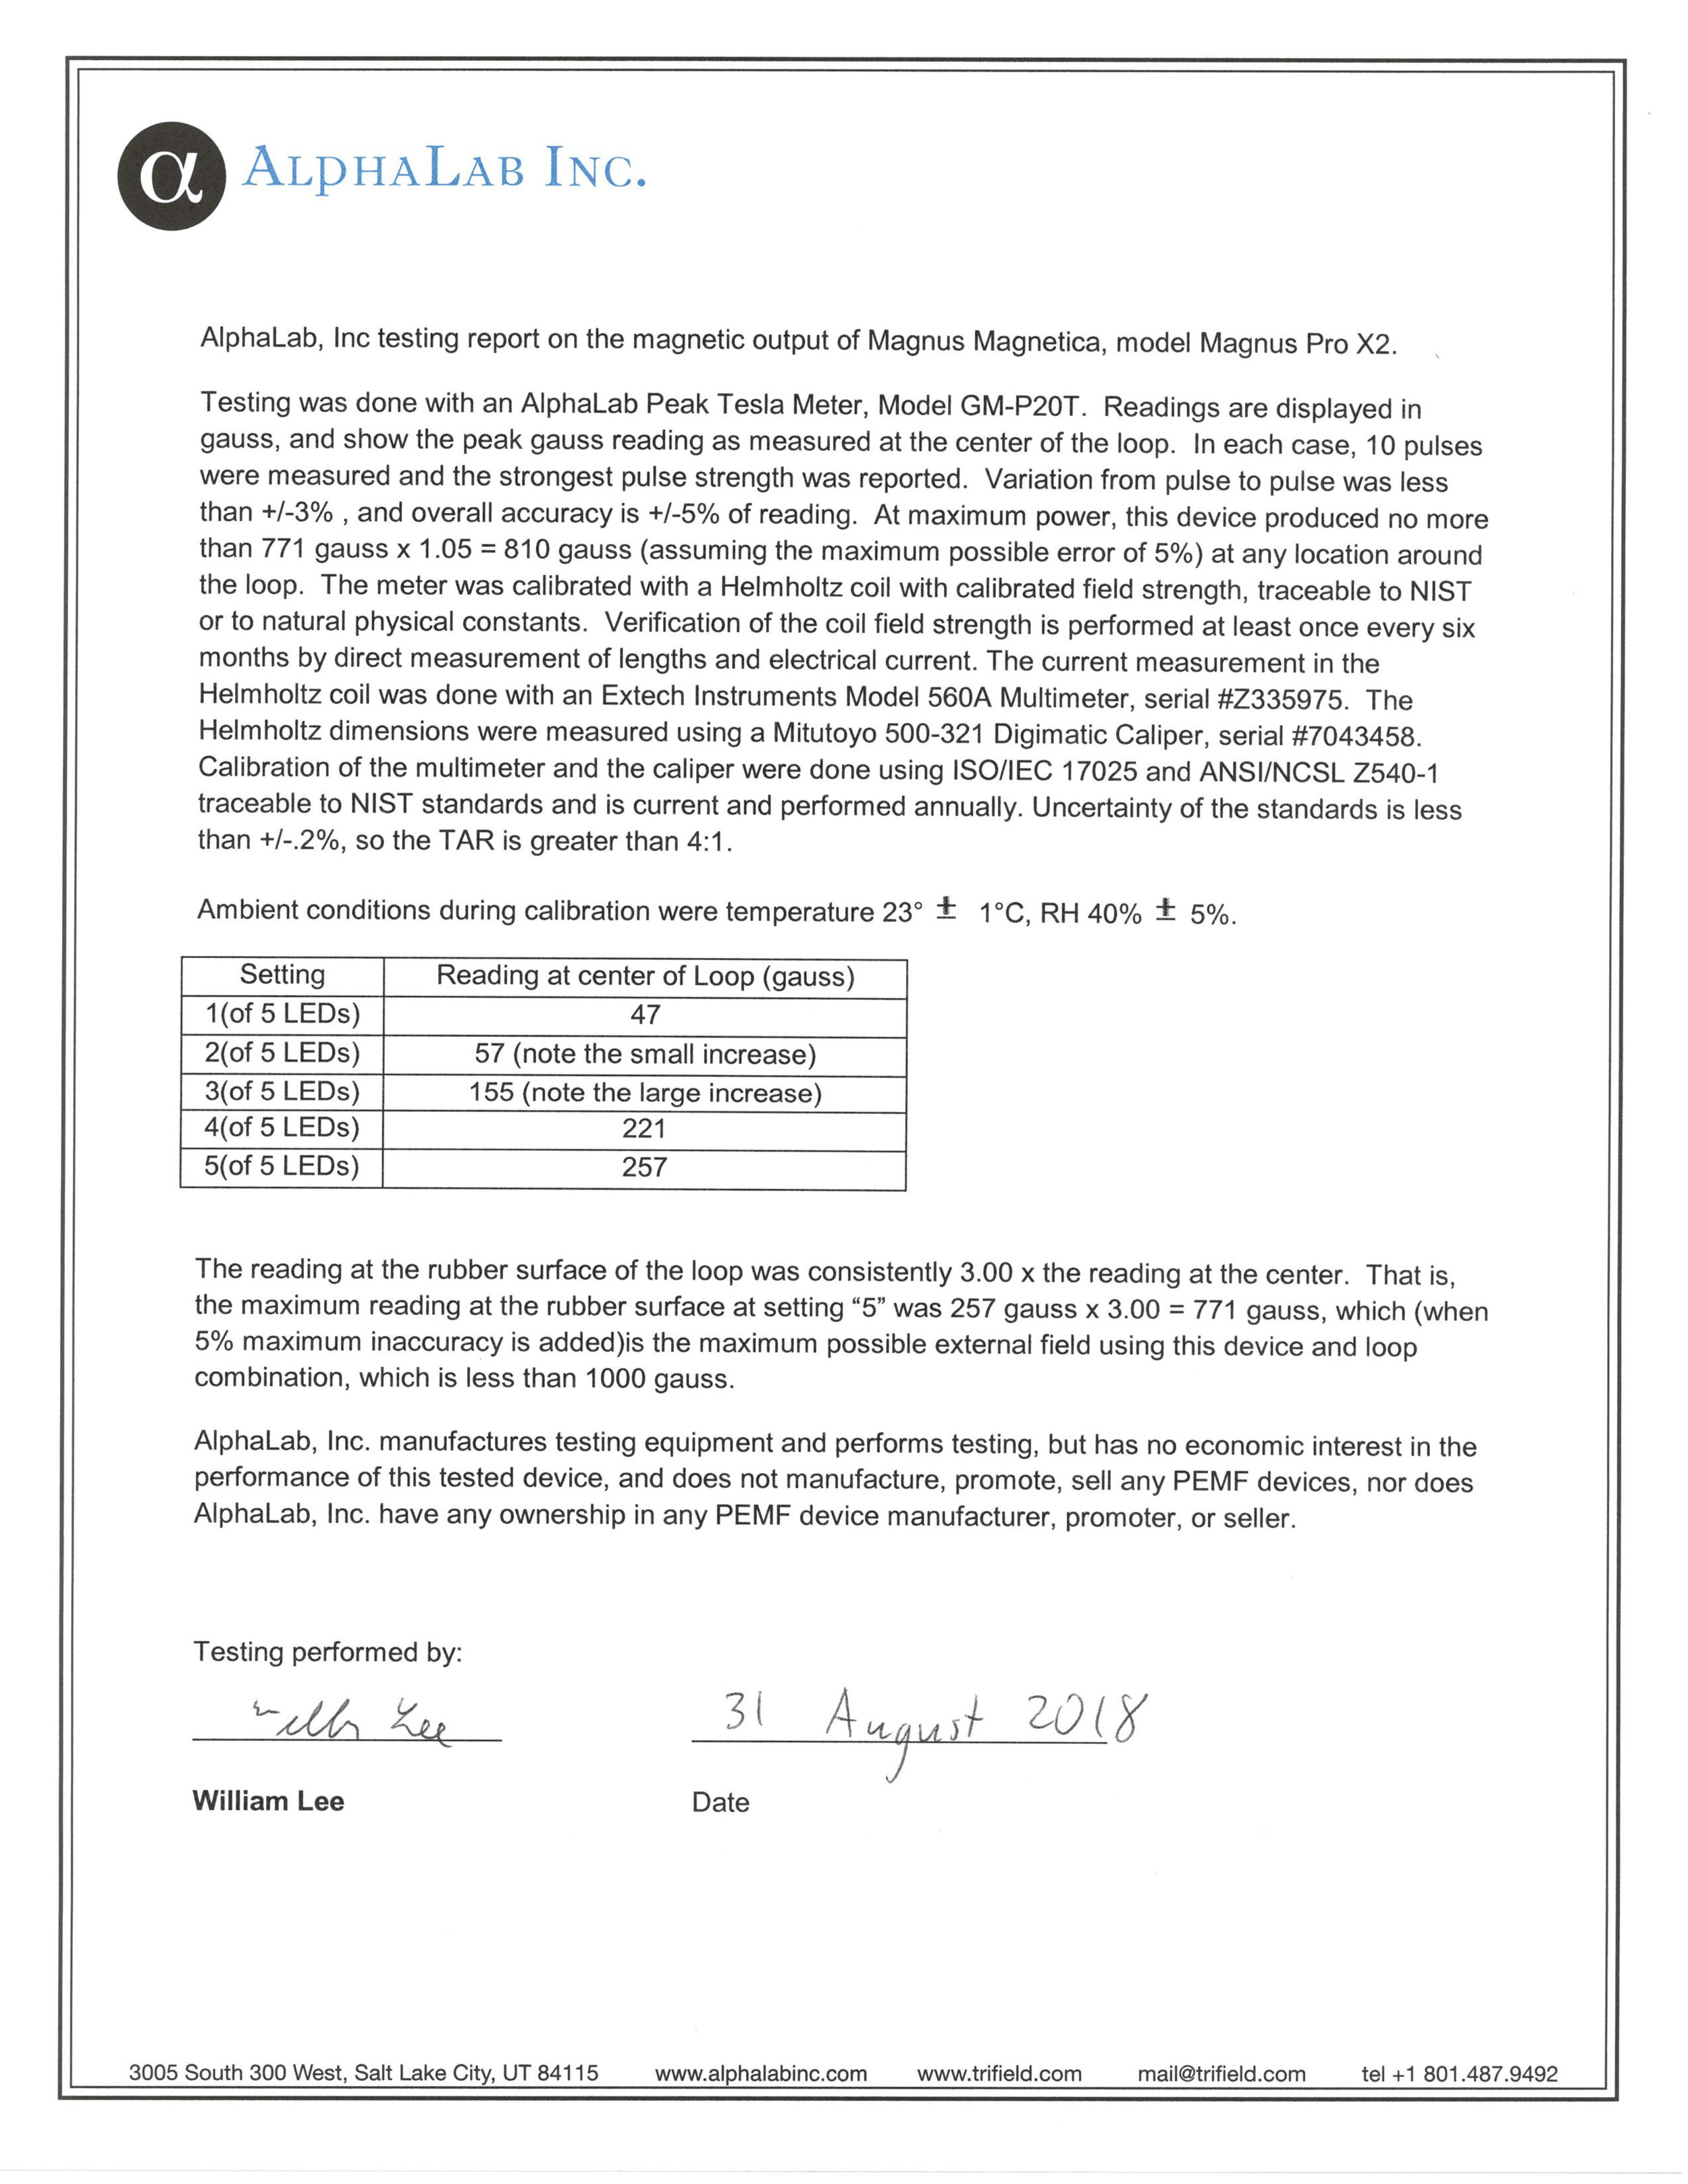 Magnus Pro X2 / AlphaLab Gauss Output Certification Report